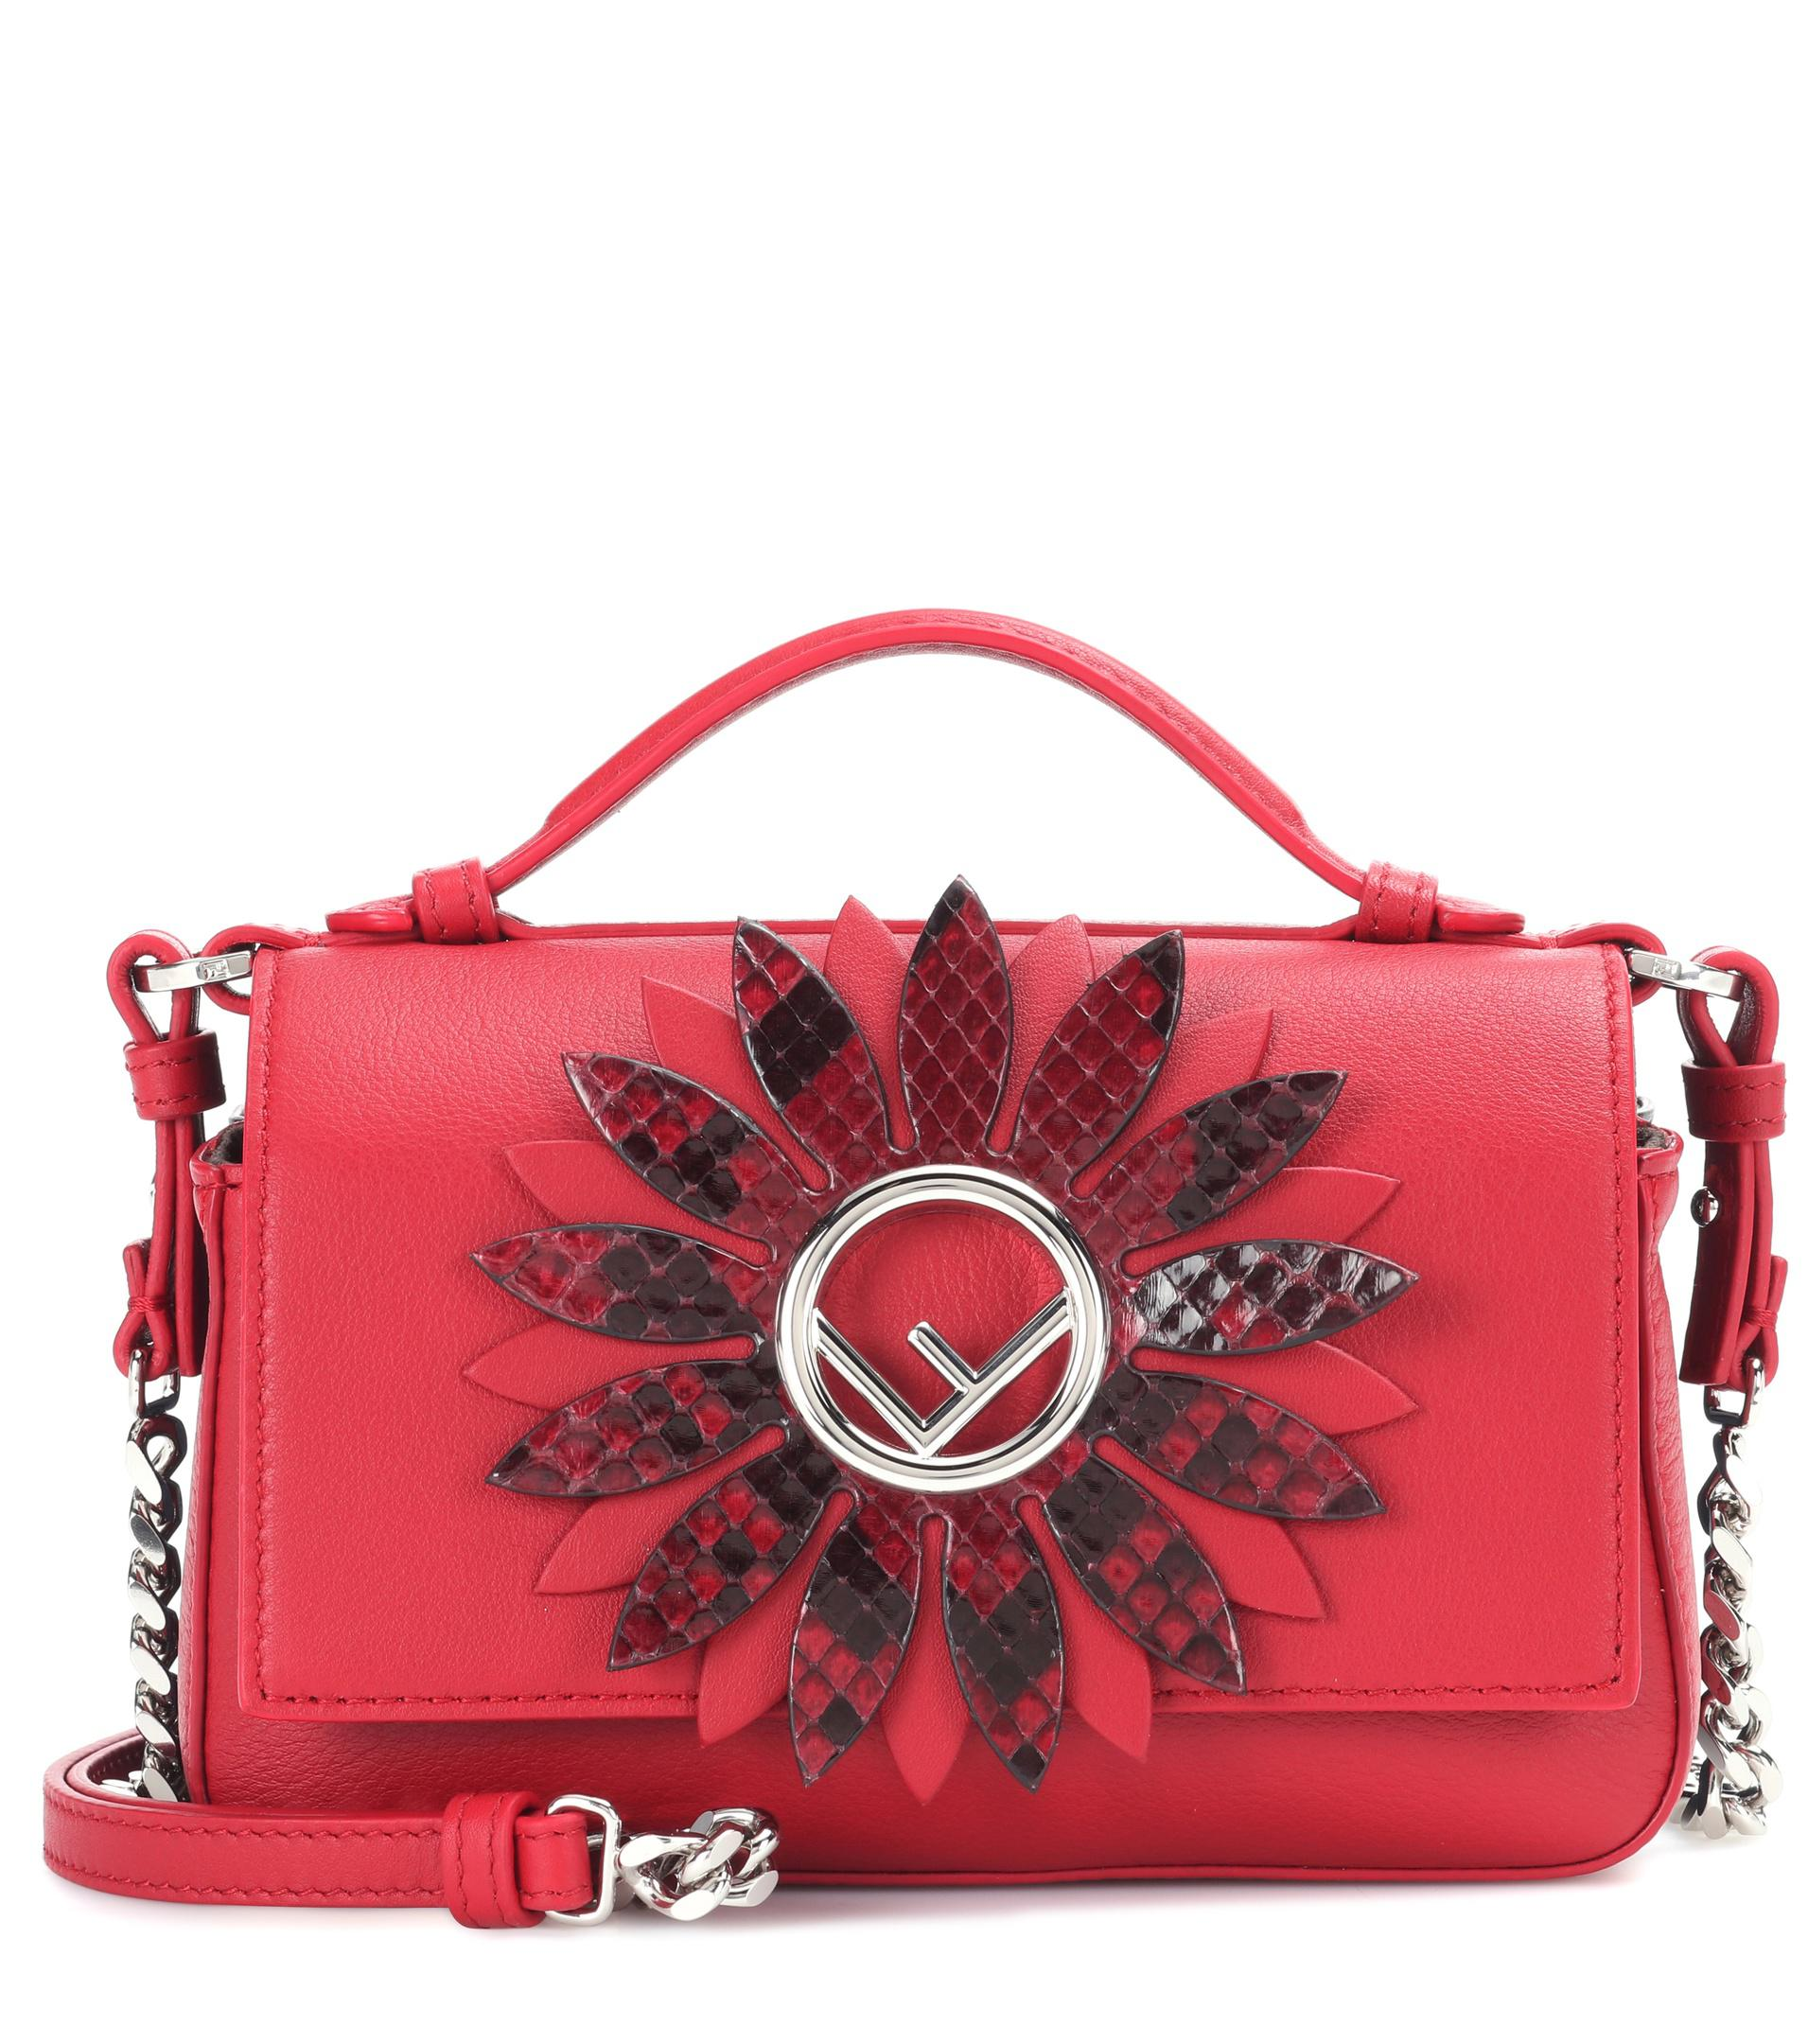 e6106b258039 Gallery. Previously sold at  Mytheresa · Women s Micro Bags Women s Fendi  Baguette ...